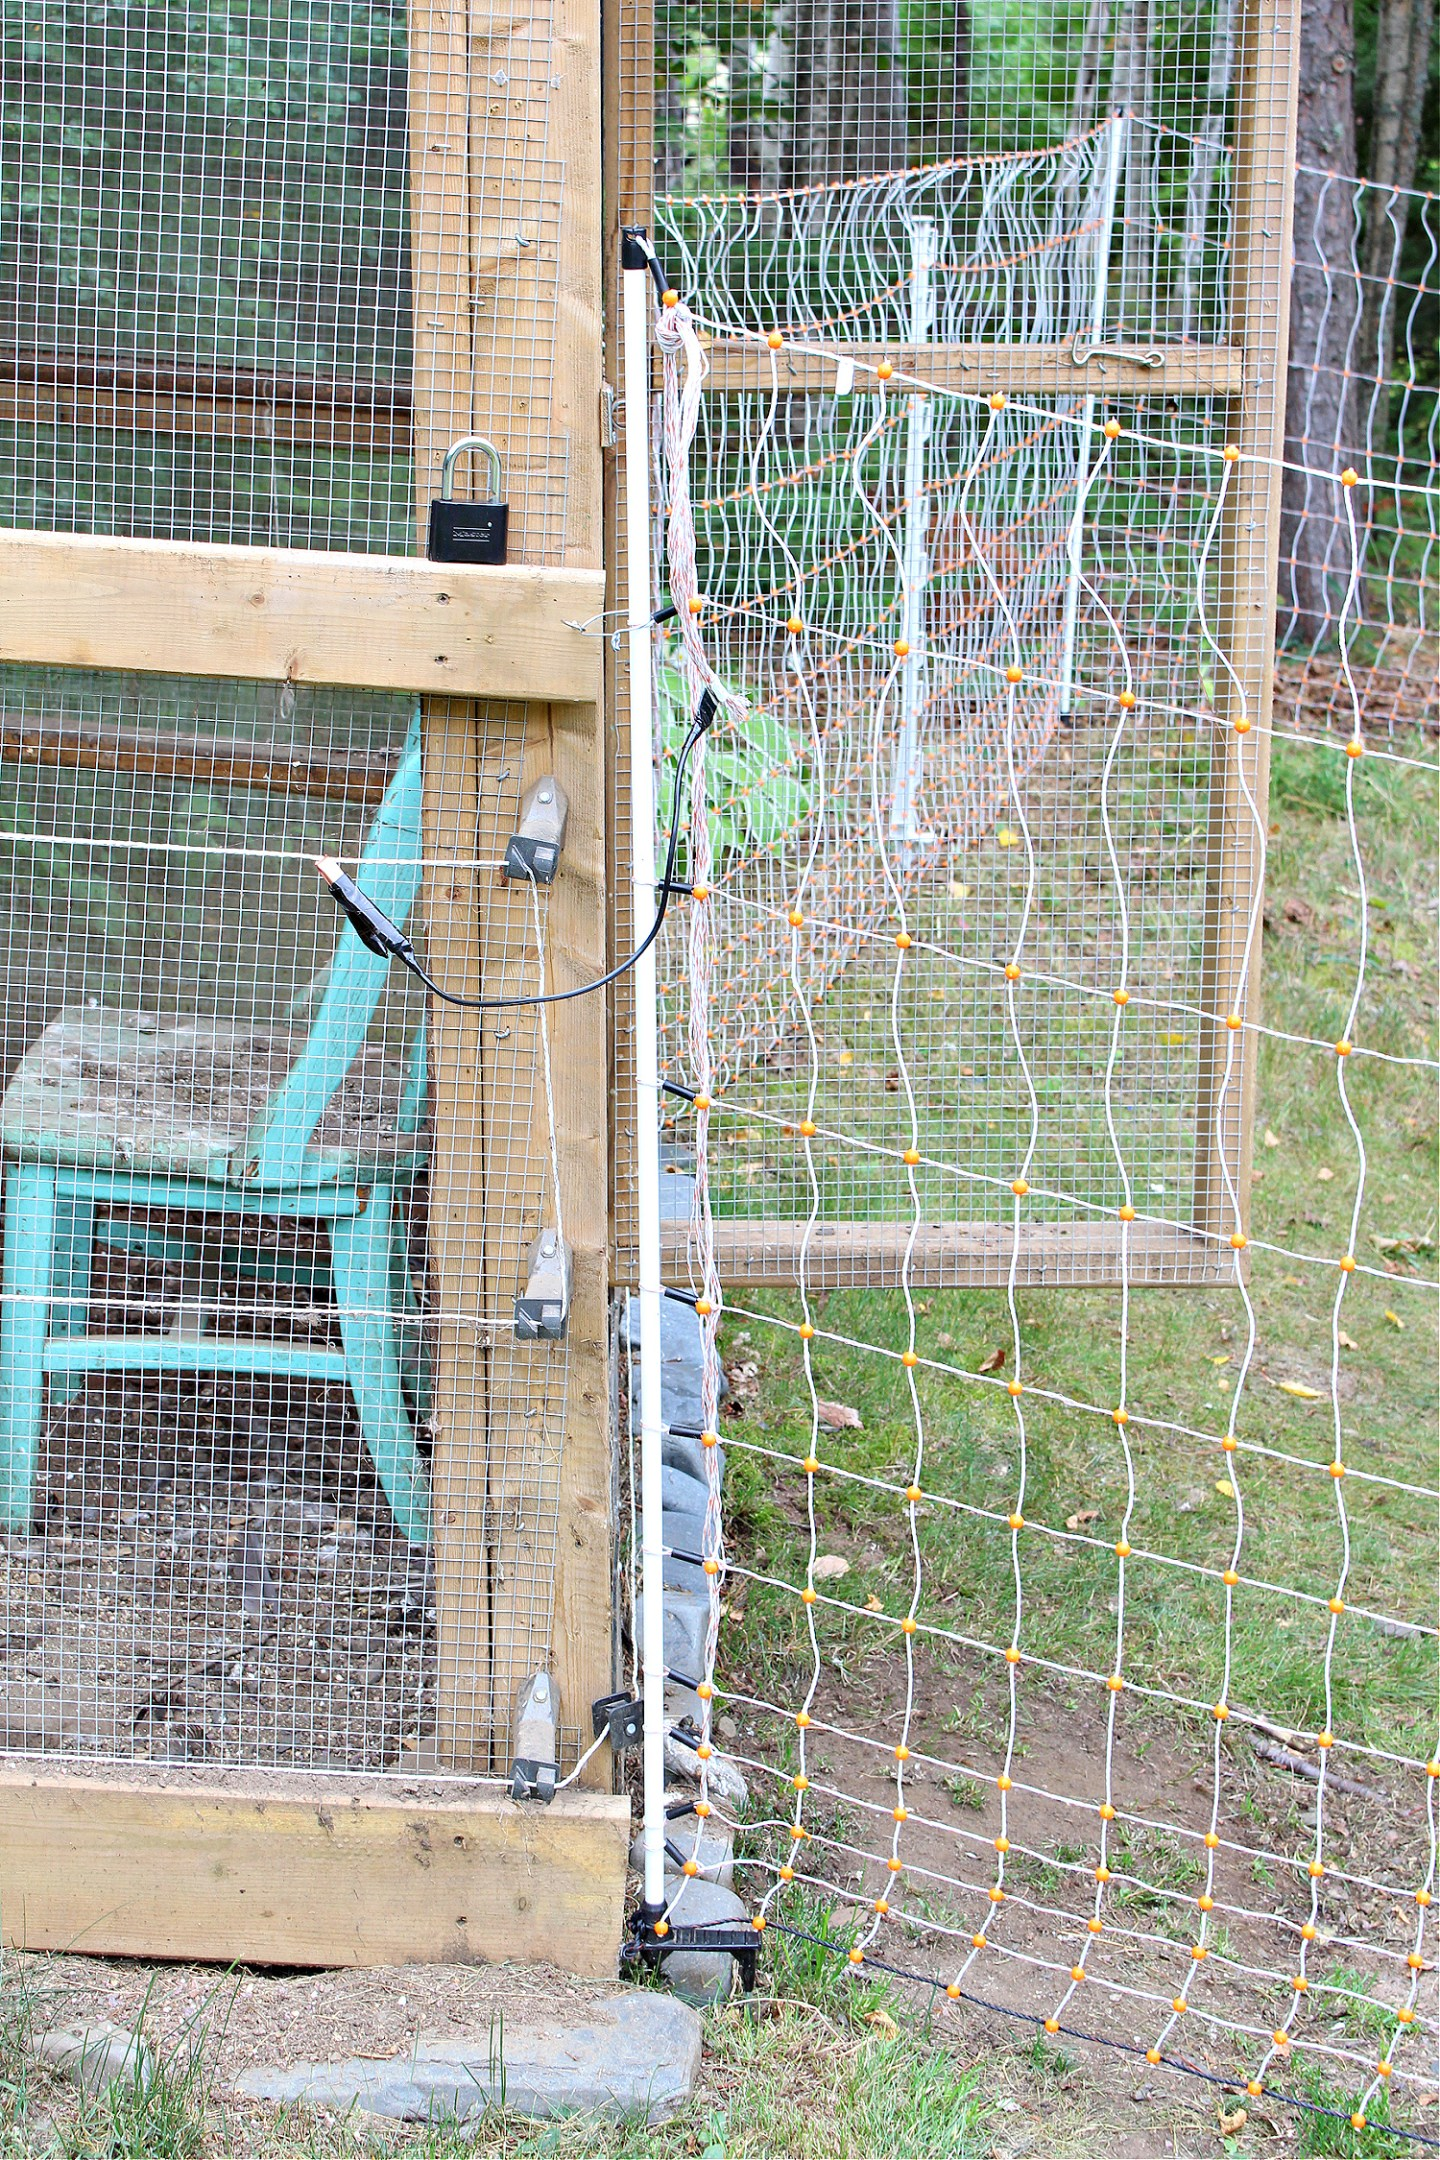 Electric Fencing on Chicken Run